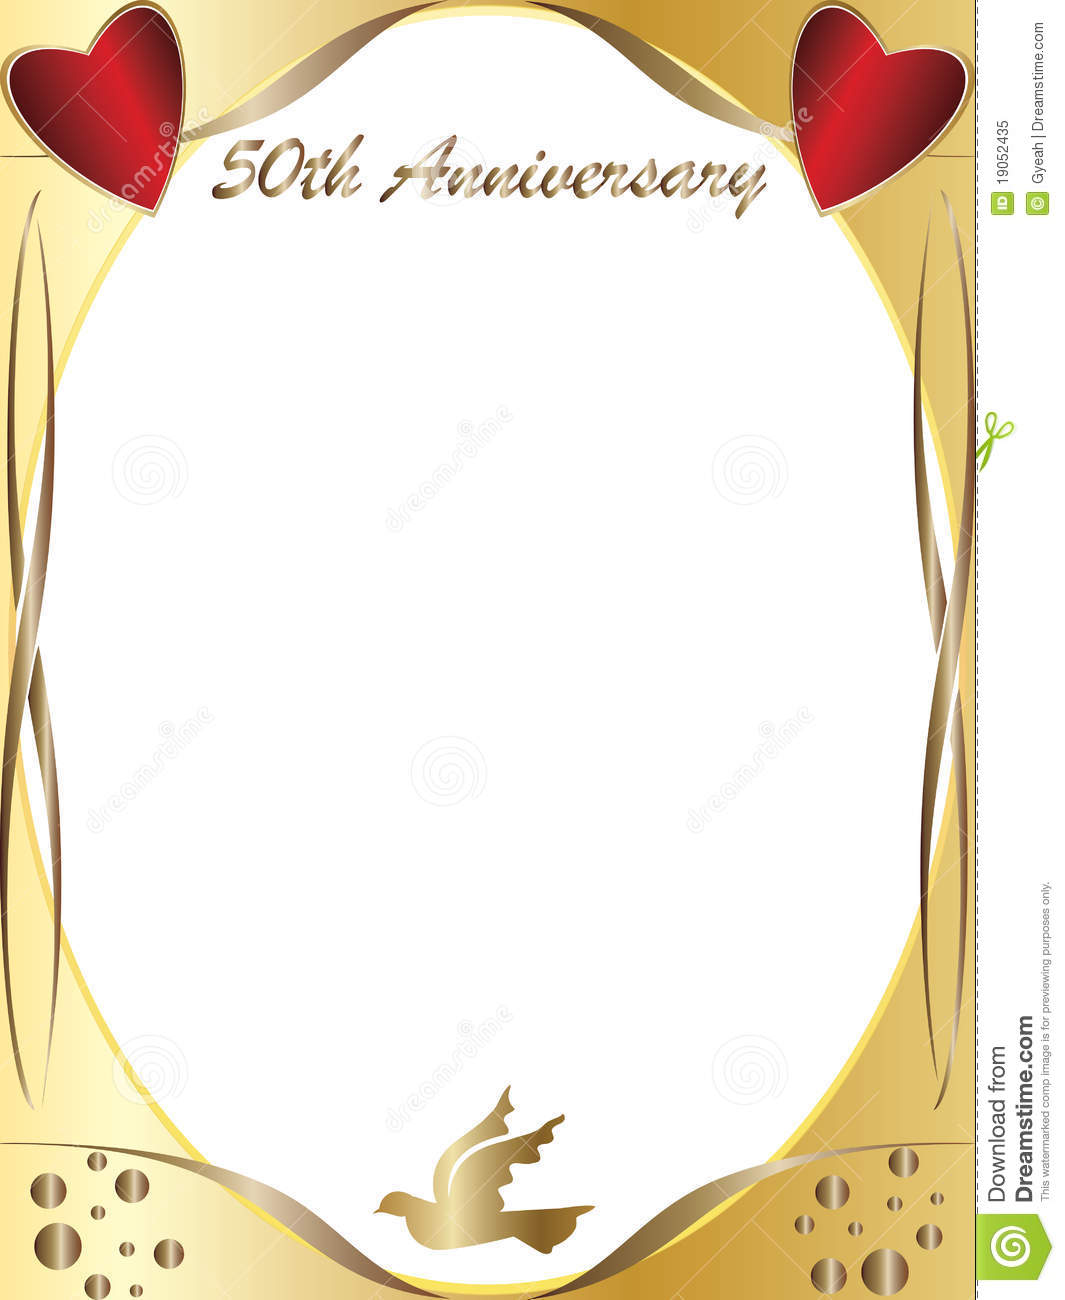 50th wedding anniversary stock illustration illustration of drawing